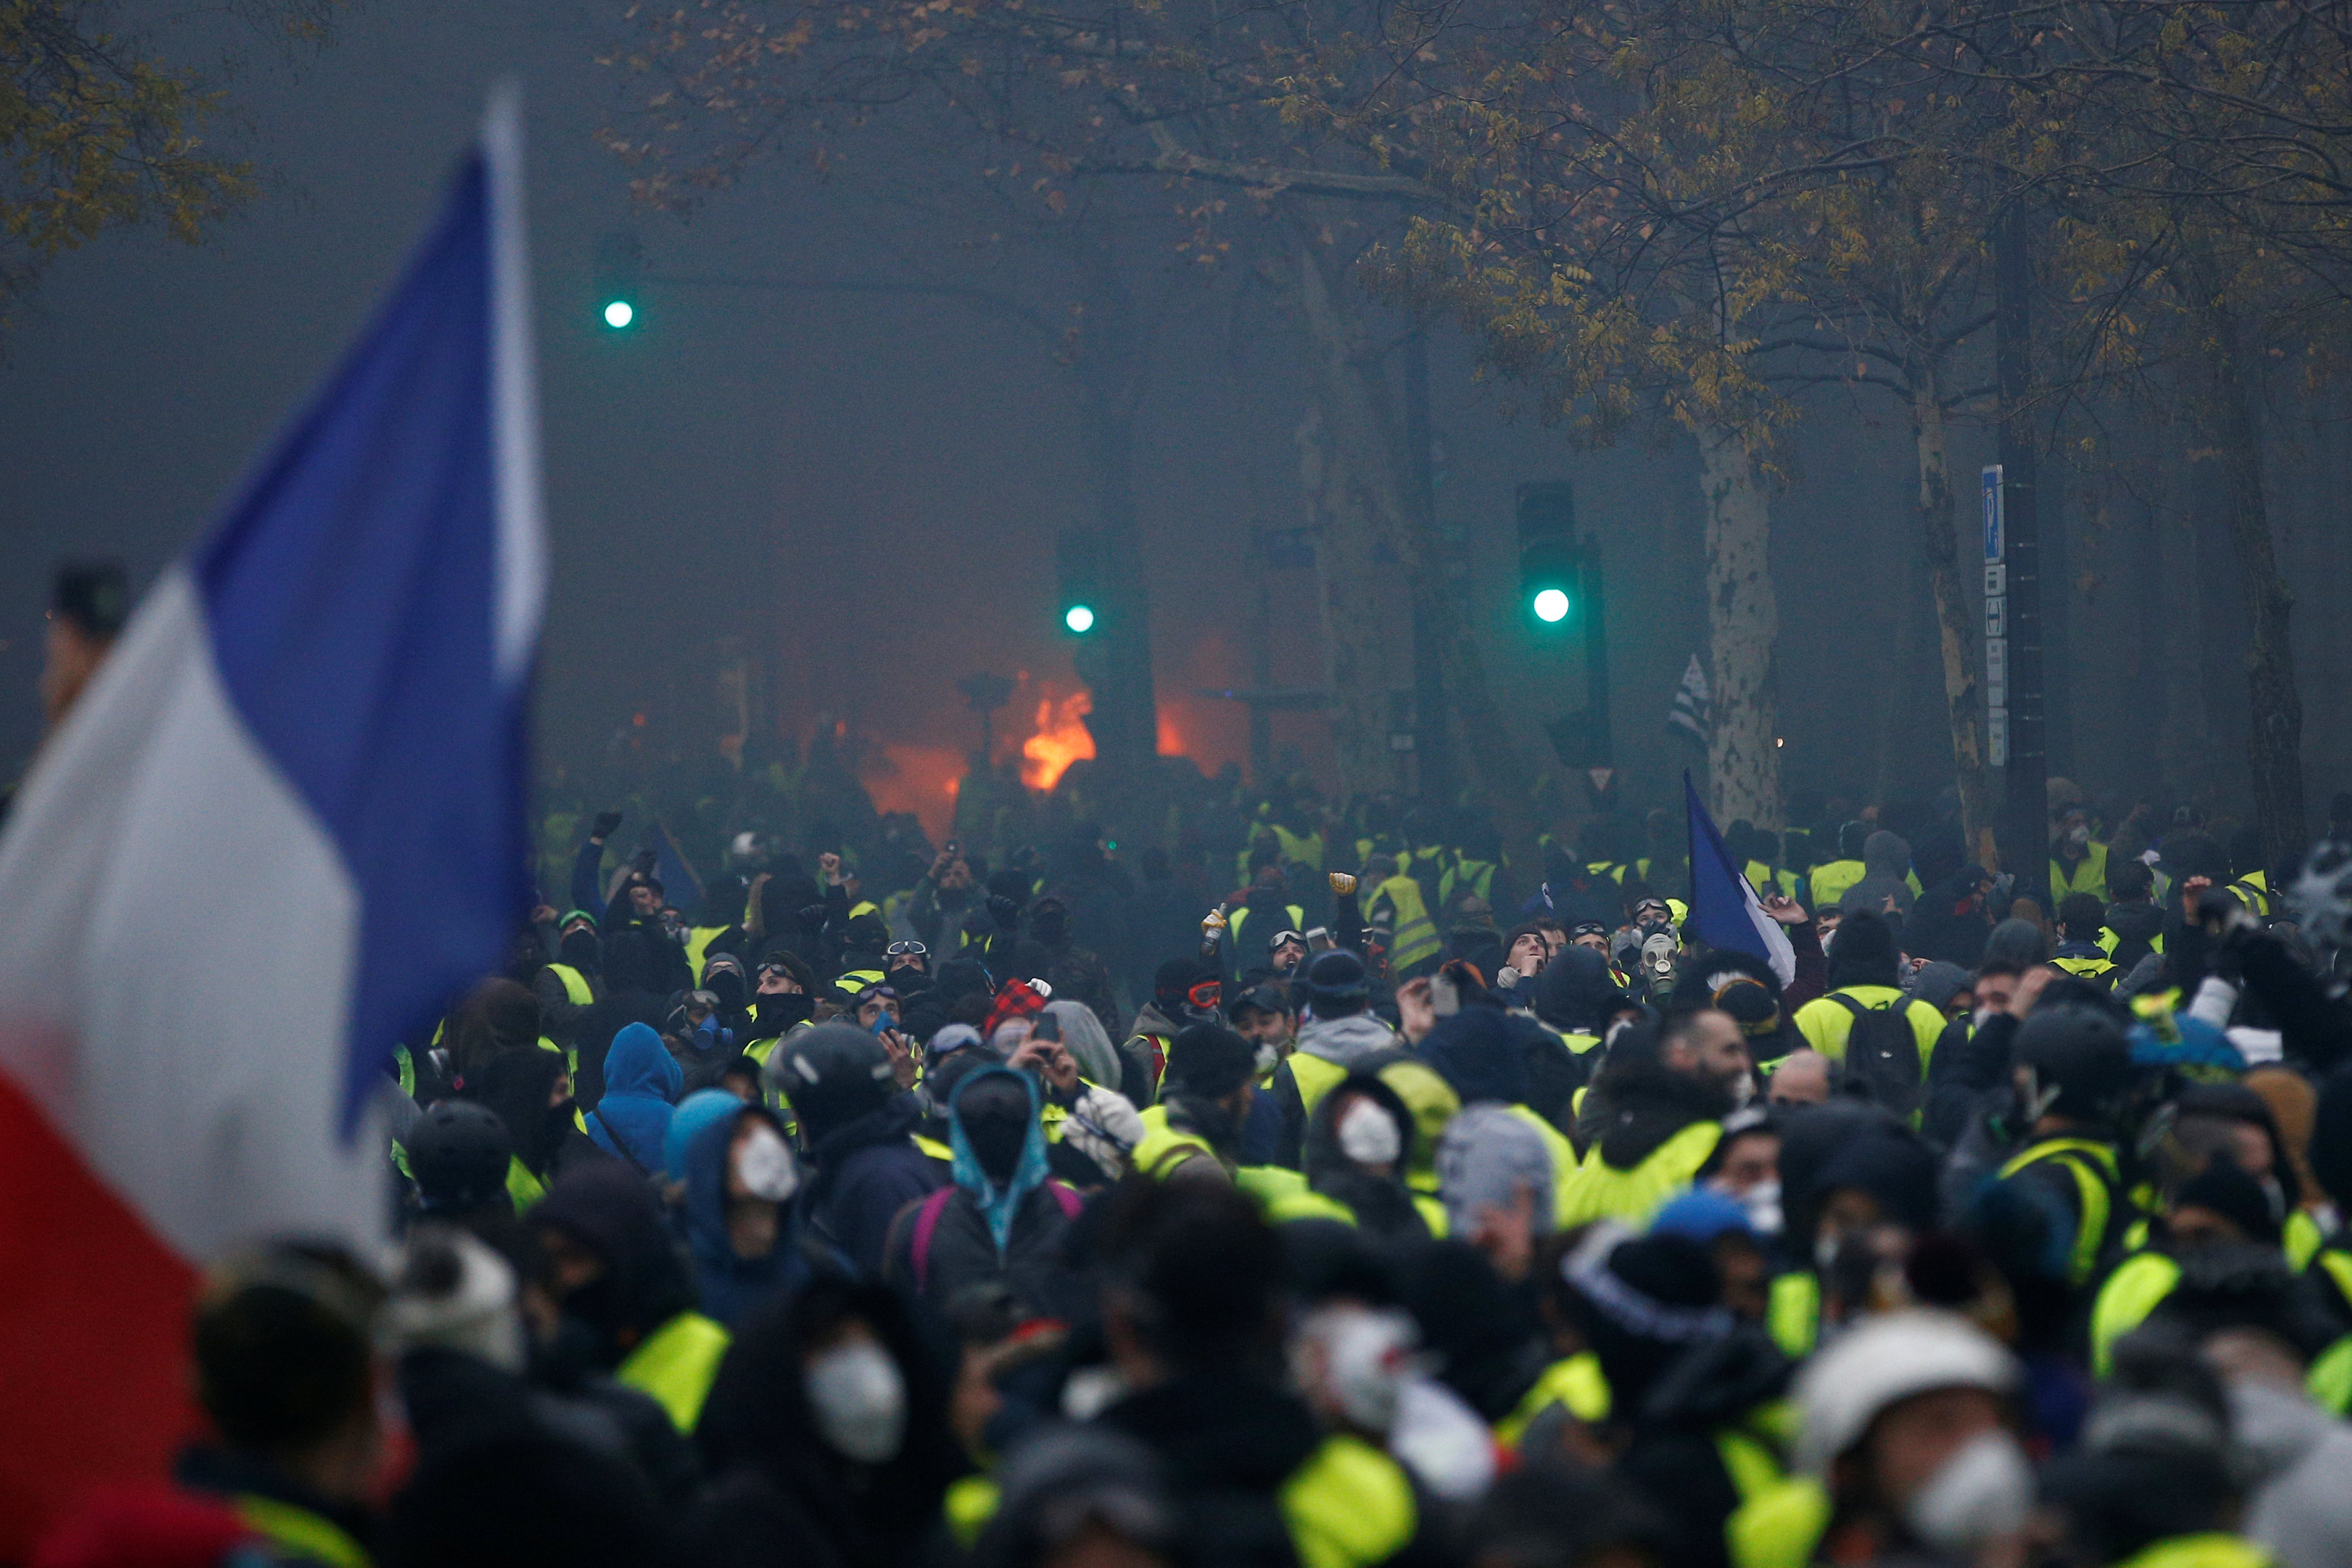 2018-12-01T153950Z_1537316365_RC1F5119D830_RTRMADP_3_FRANCE-PROTESTS